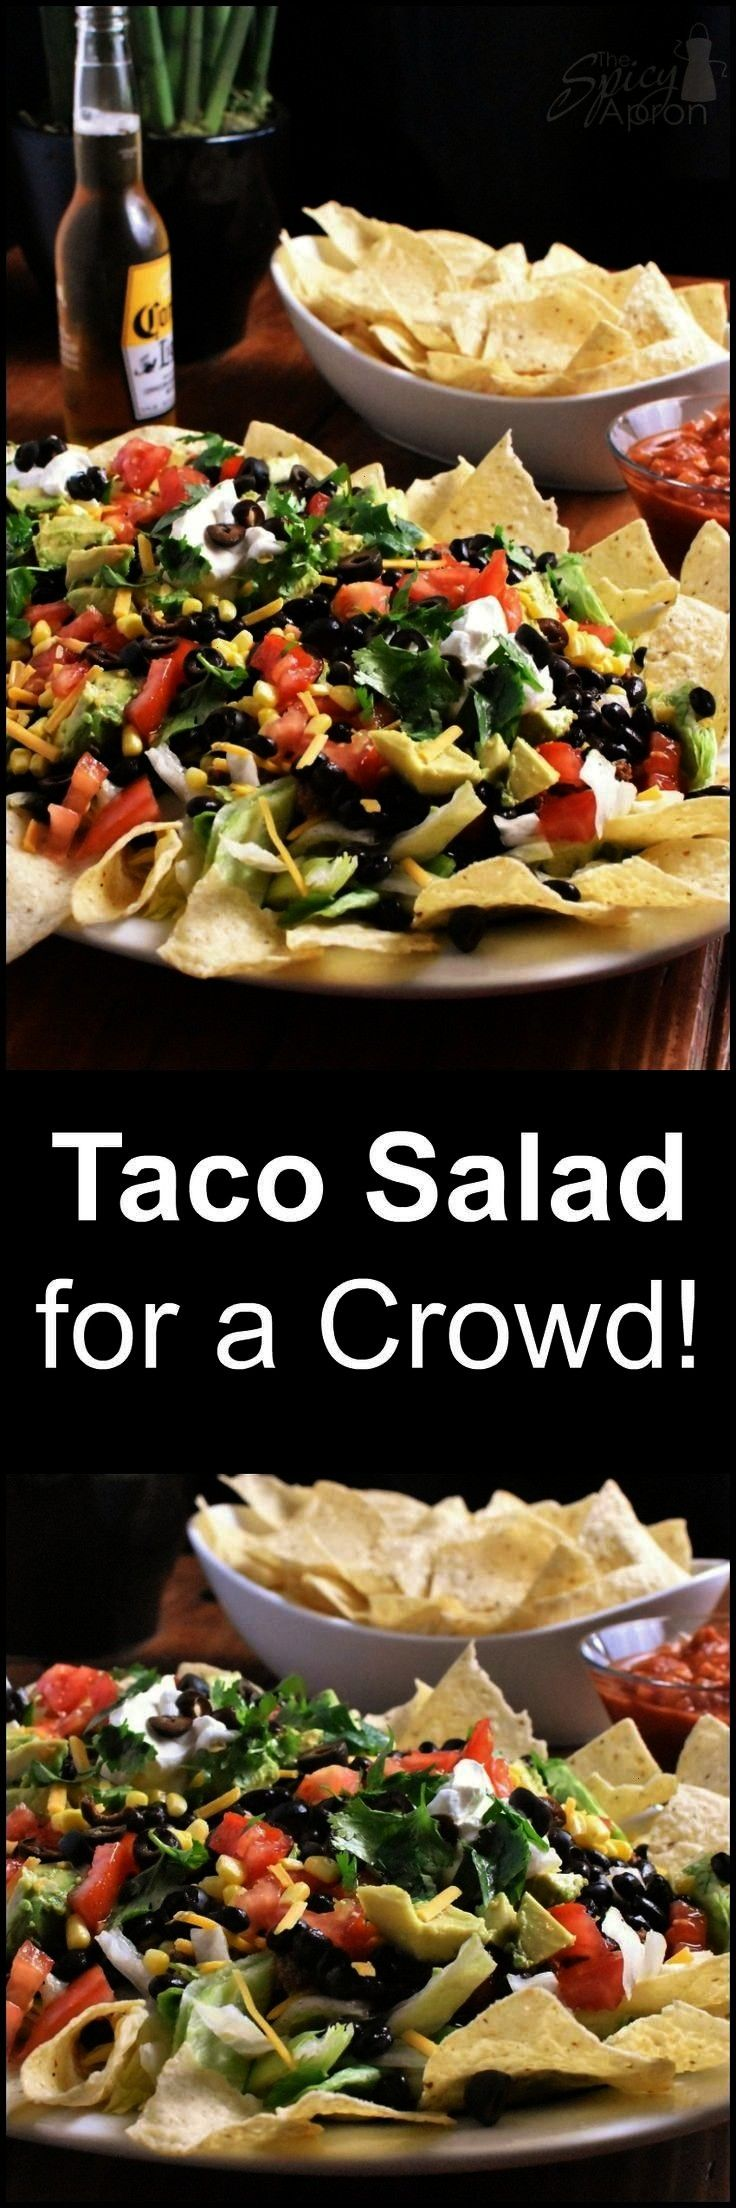 need to feed a crowd in a hurry! This Beefy Taco Salad does the trick! ... When you need to feed a